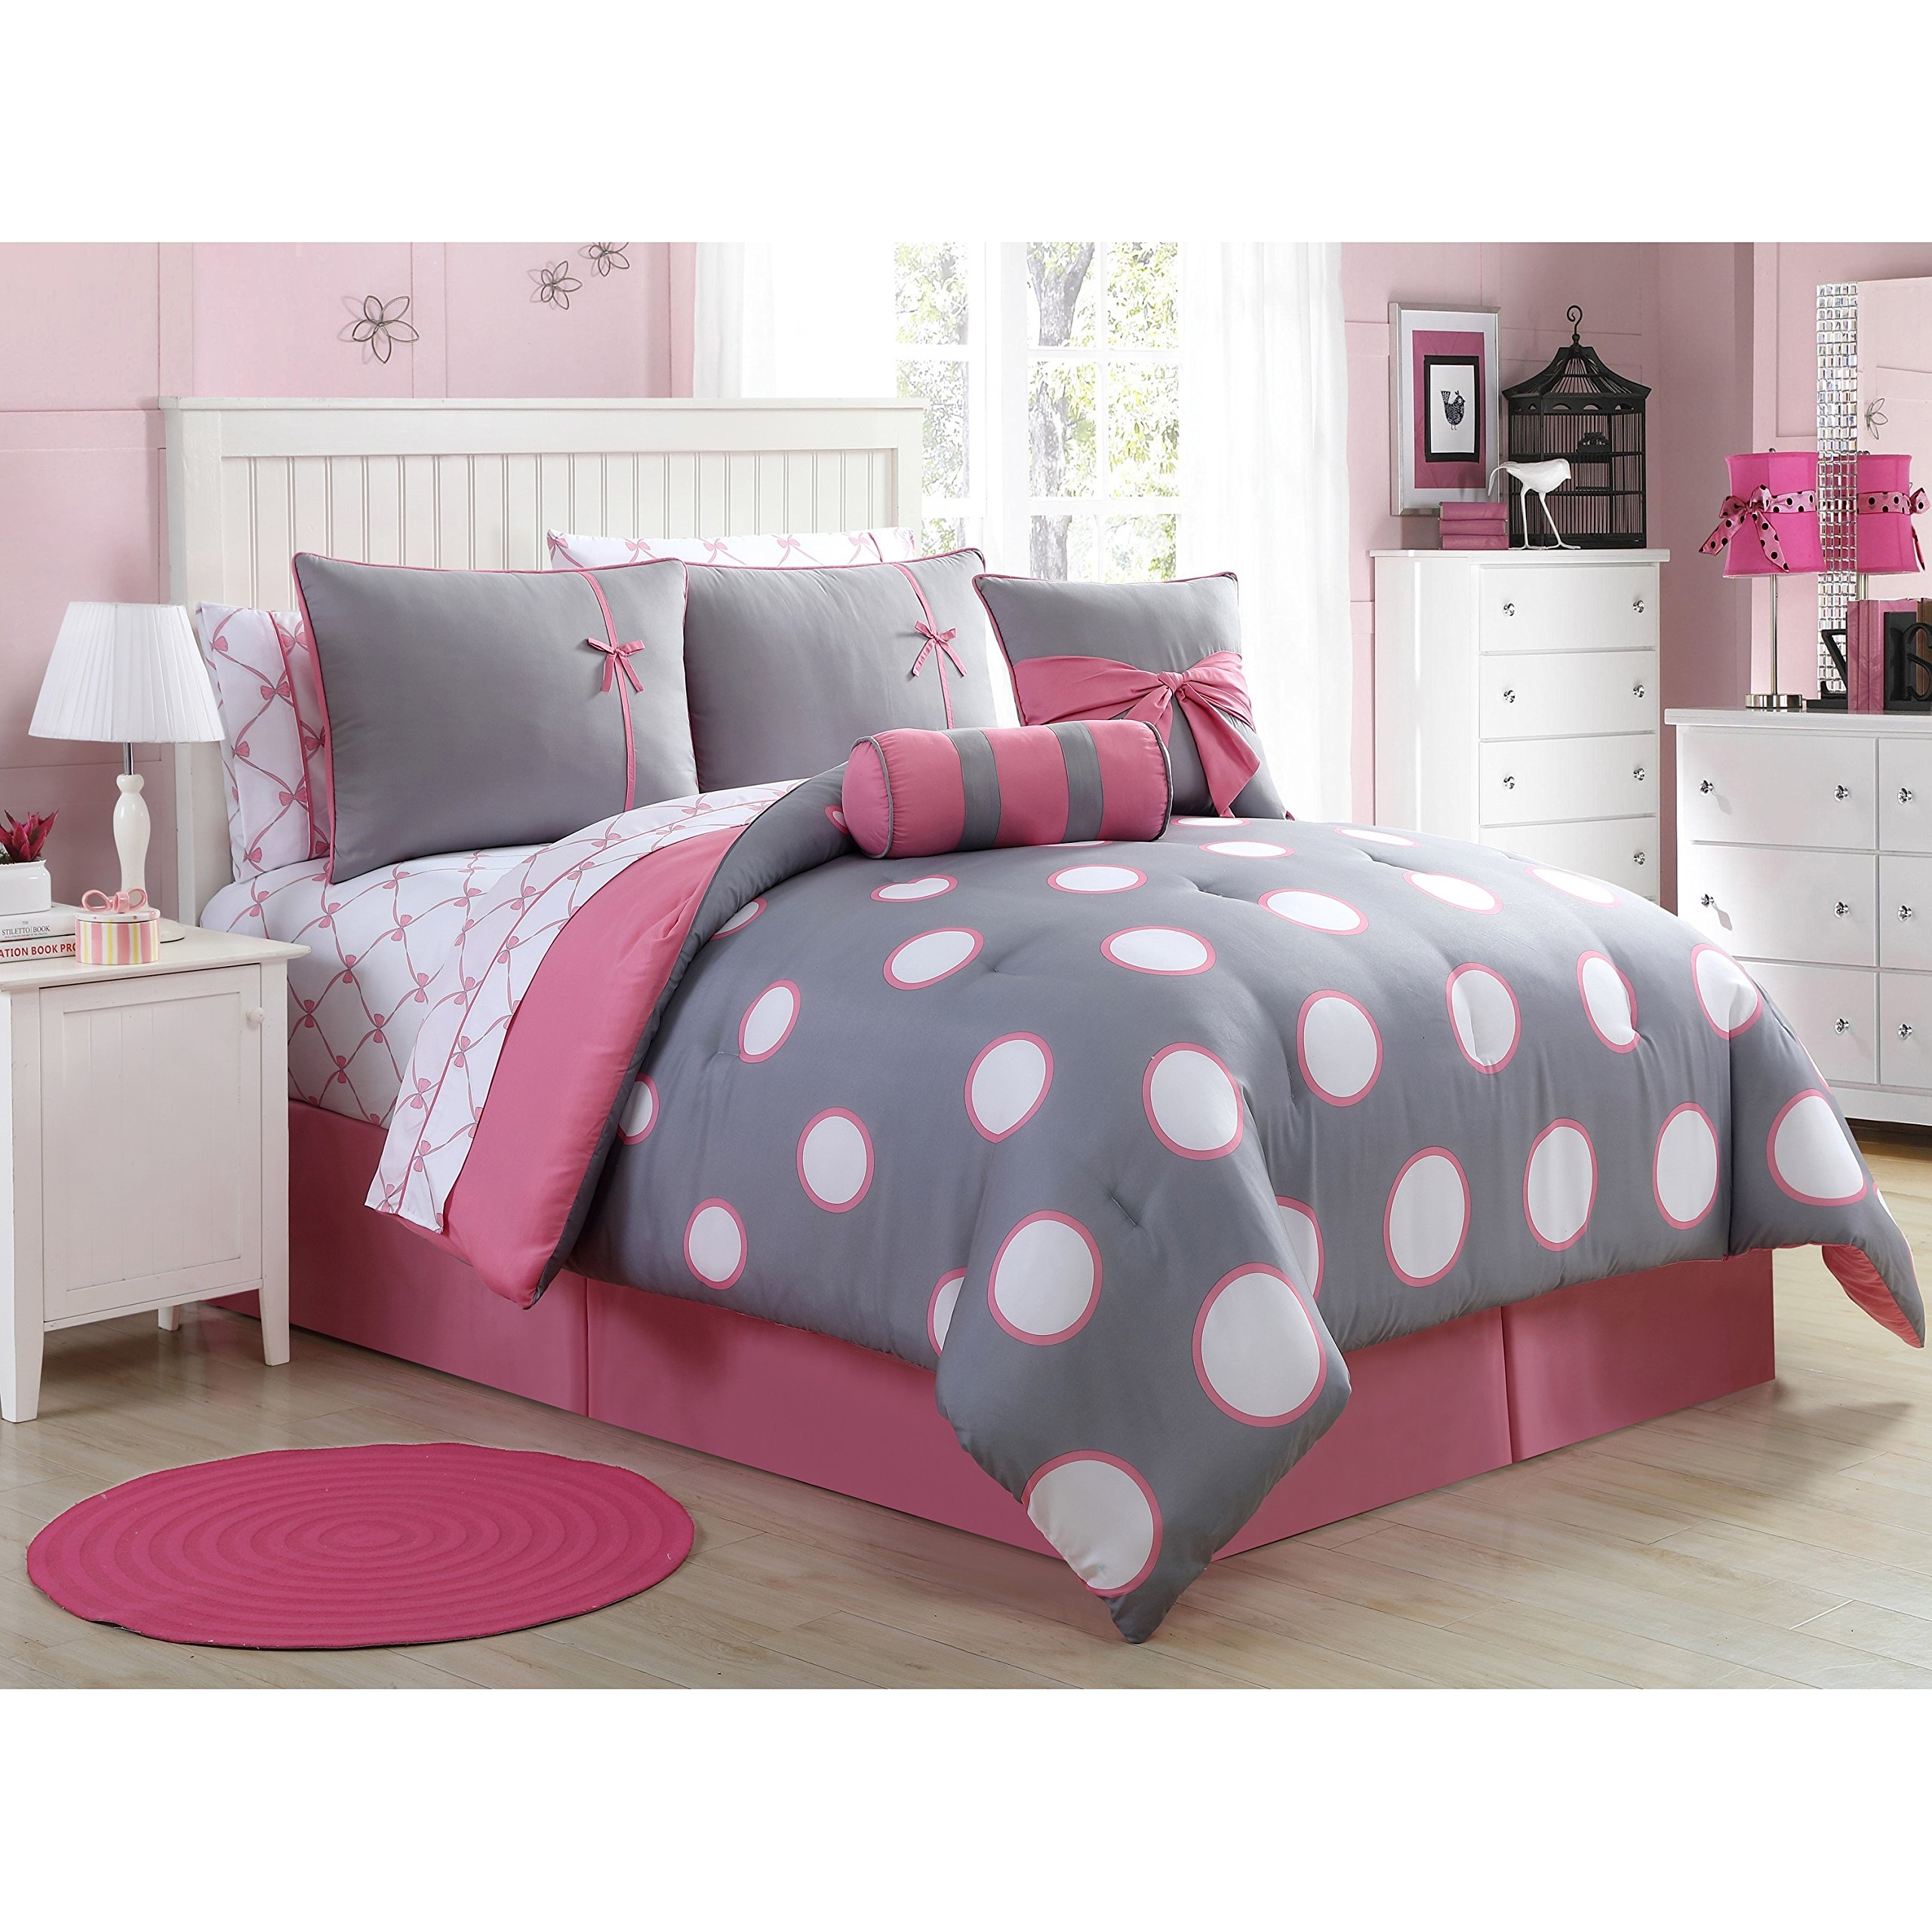 Teen Girl Comforter Sets Pink and Gray Polka Dot Bed in a Bag with Designer Home Sleep Mask (Full Pink/Gray)